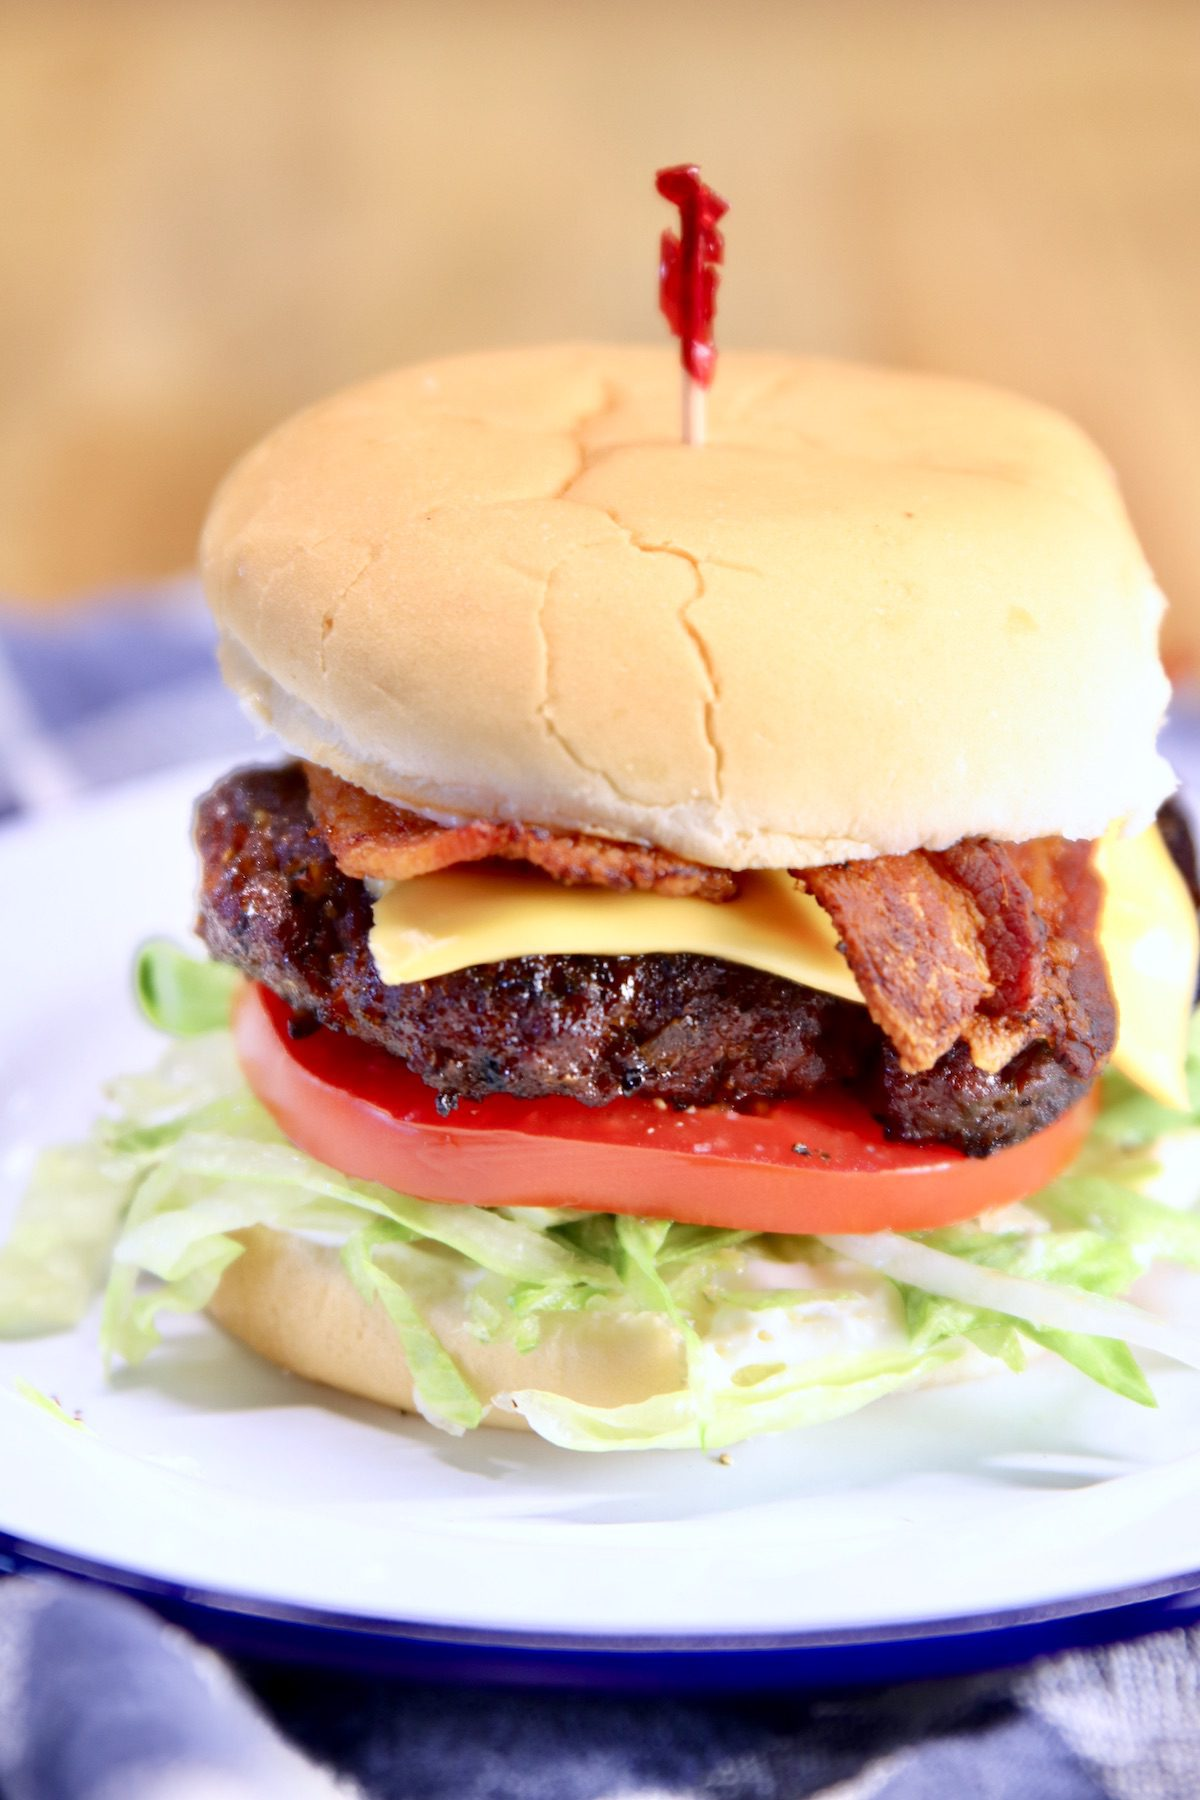 bacon cheeseburger with red top pick on a plate